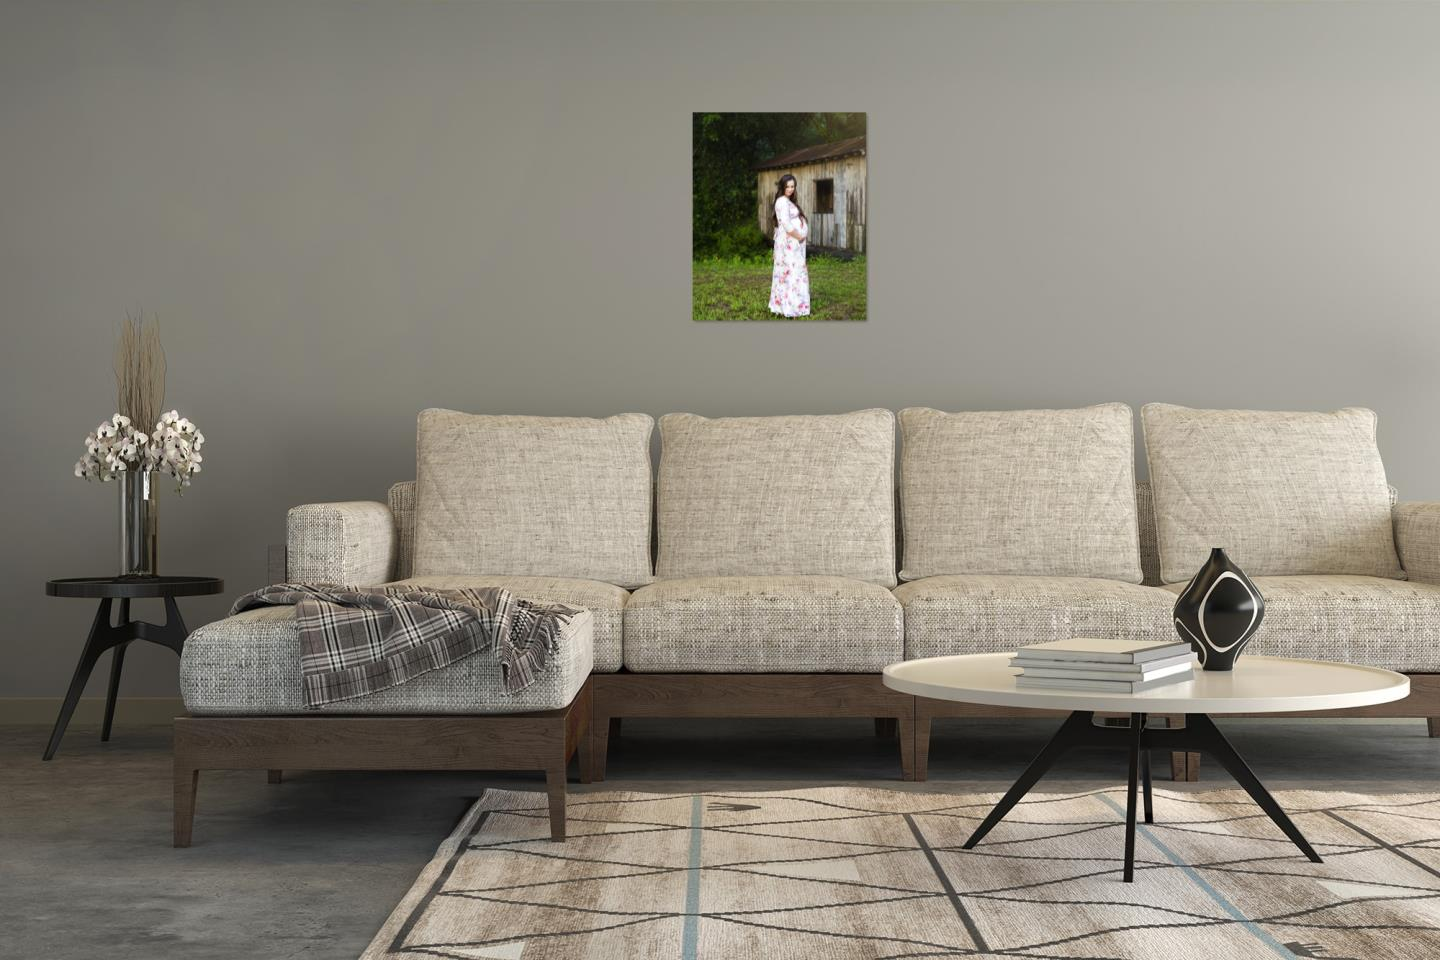 Here is the way a 16x20 piece of wall art would look on this wall.